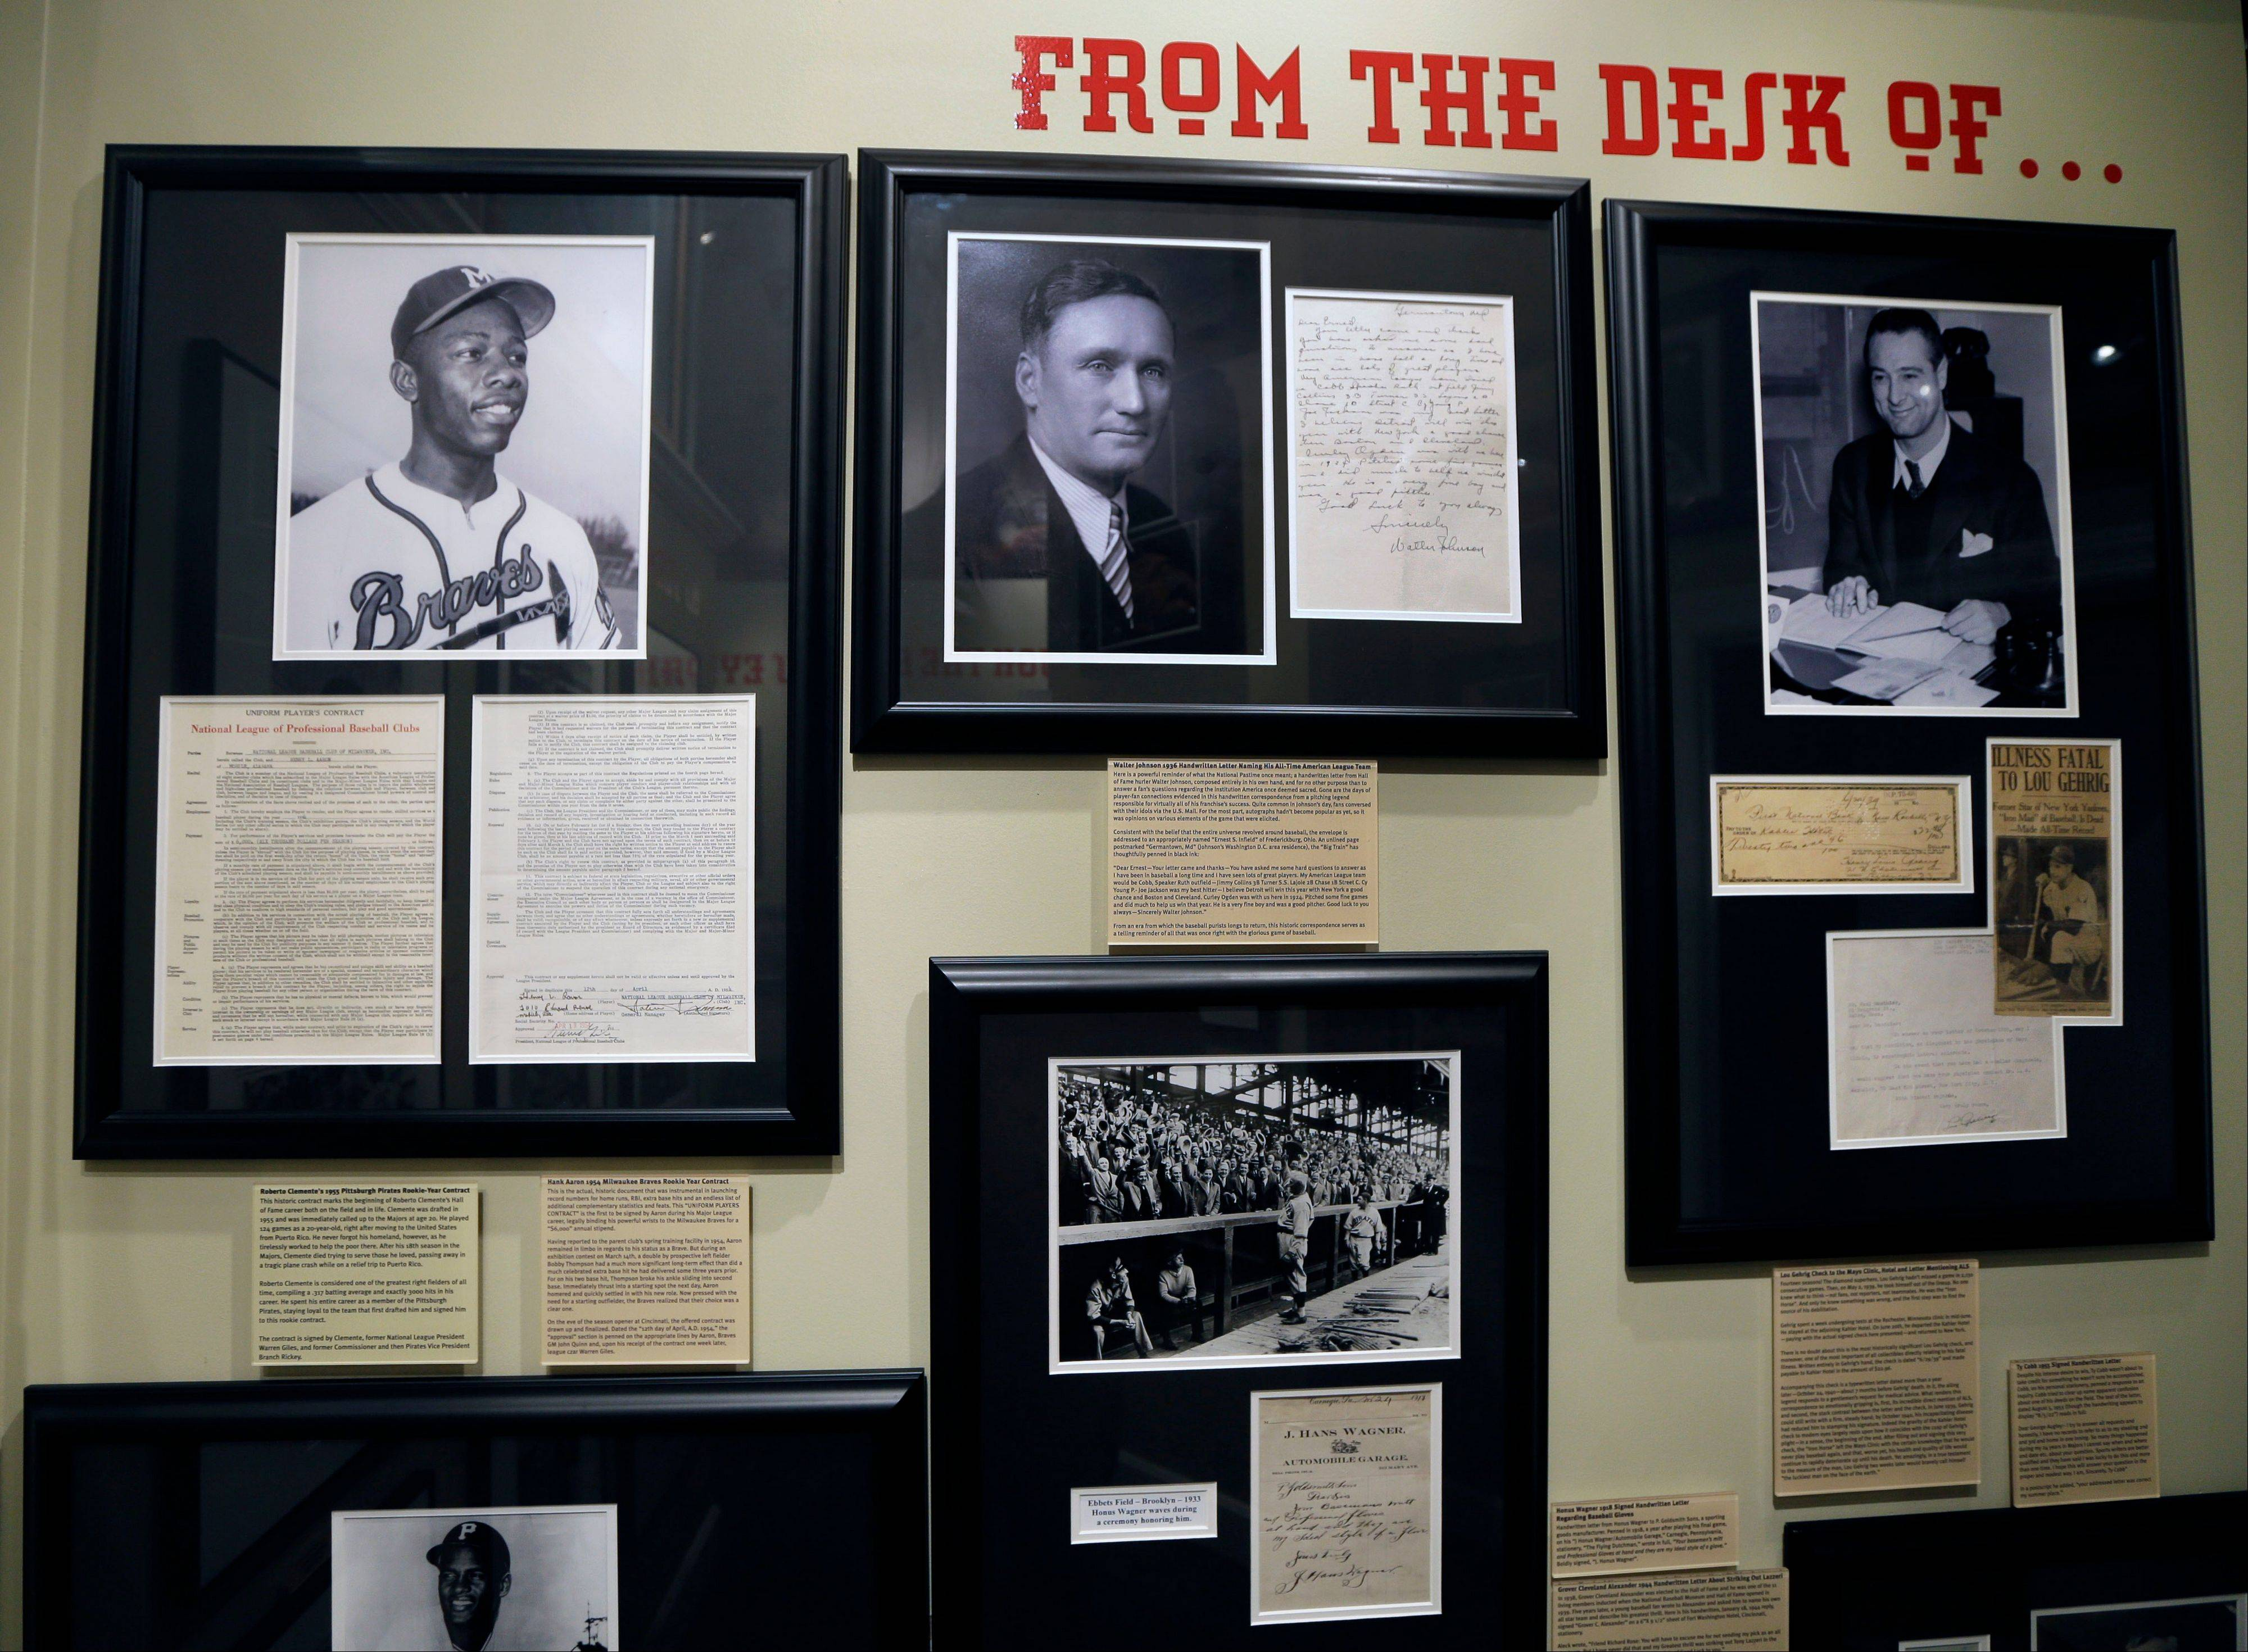 Signed players contracts, personal letters and signed checks from baseball greats such as Henry Aaron, Walter Johnson, Lou Gehrig, and Honus Wagner, are displayed at the Green Diamond Gallery in Cincinnati.